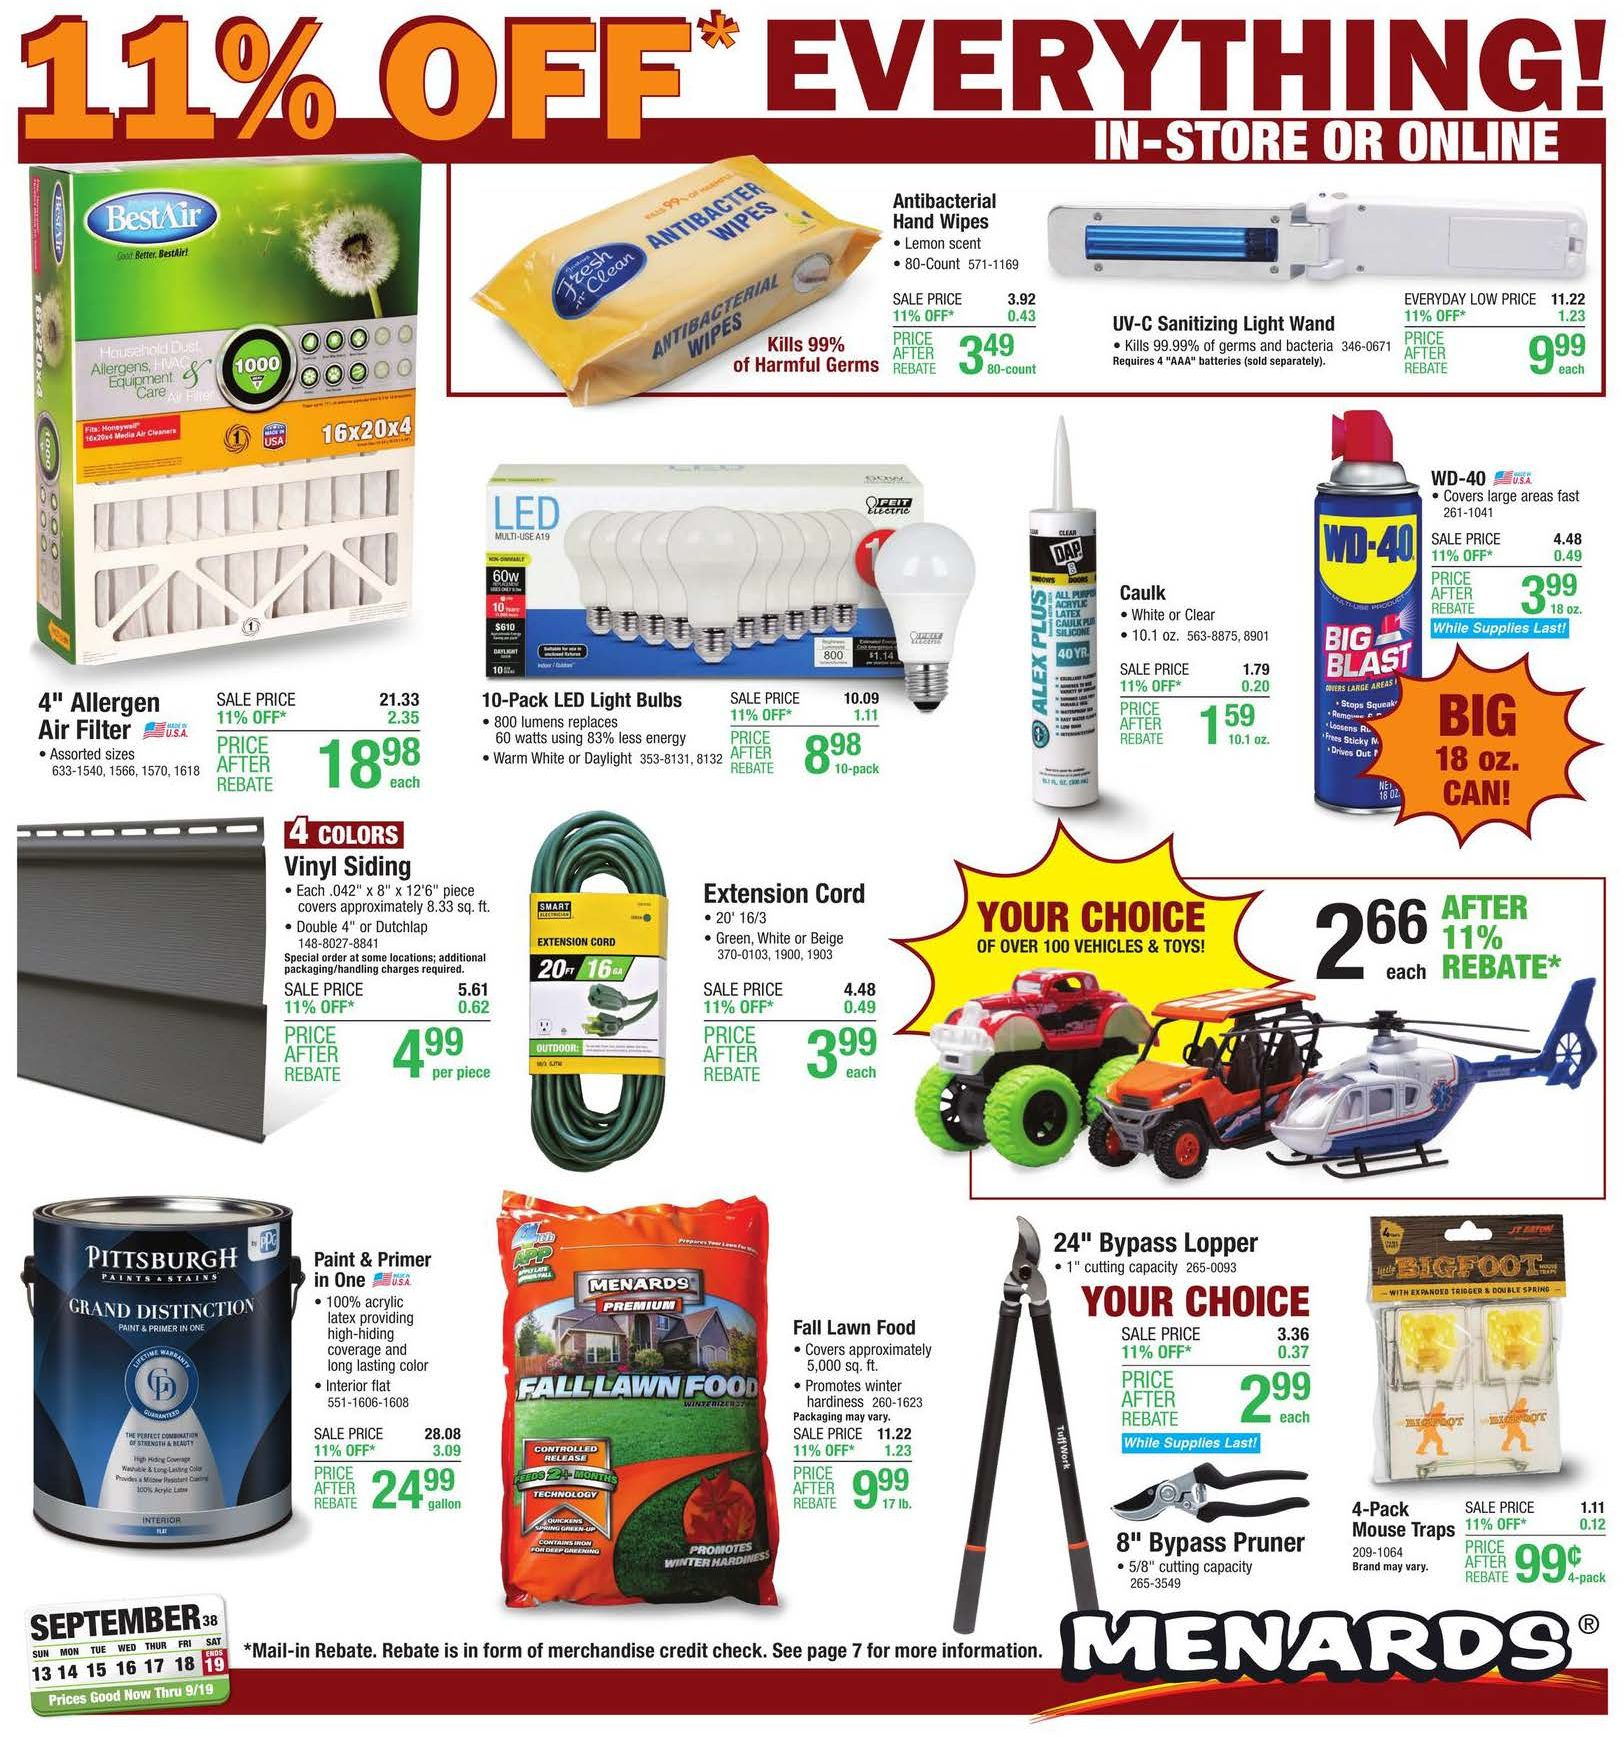 Menards Weekly September Ad valid from Sep 13 – 19, 2020